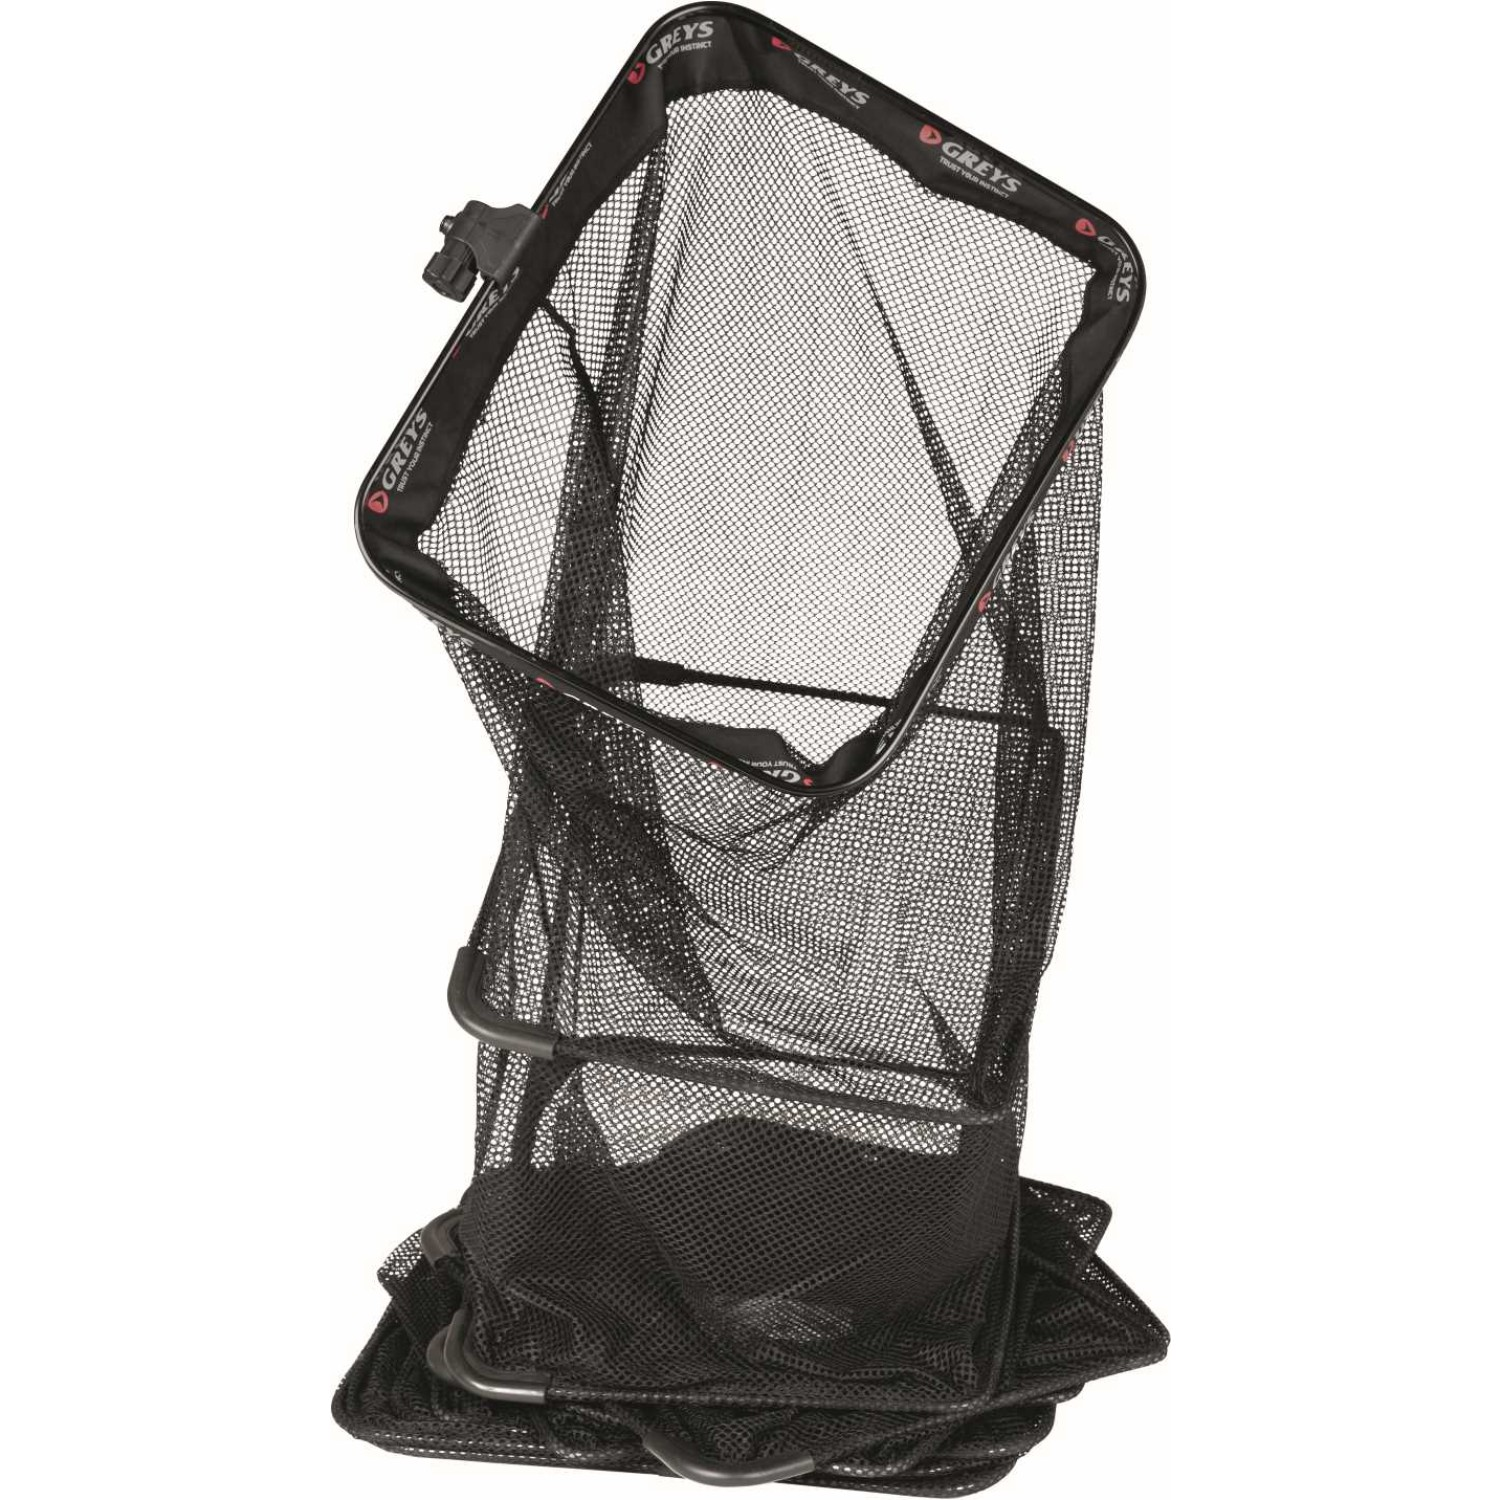 Greys Prodigy Specialist Keep Net River 3.50m, 50 x 40cm